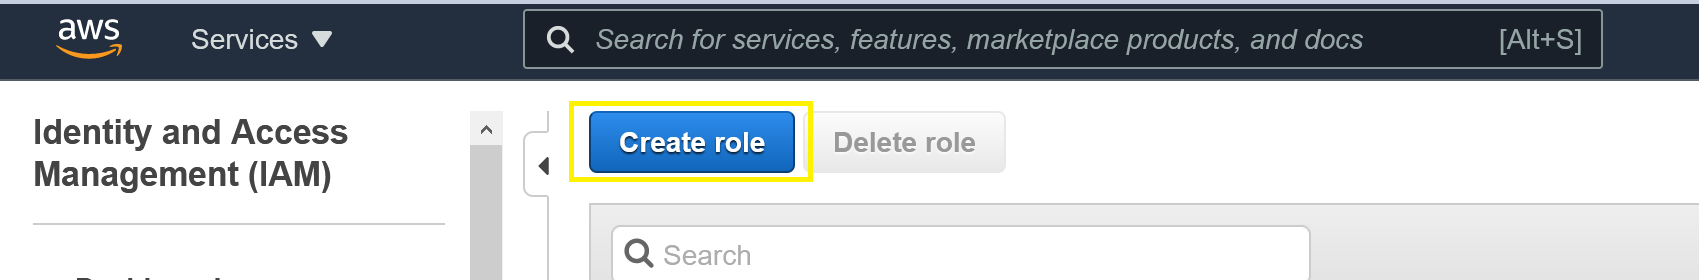 Roles section of the IAM console showing Create Role selection.